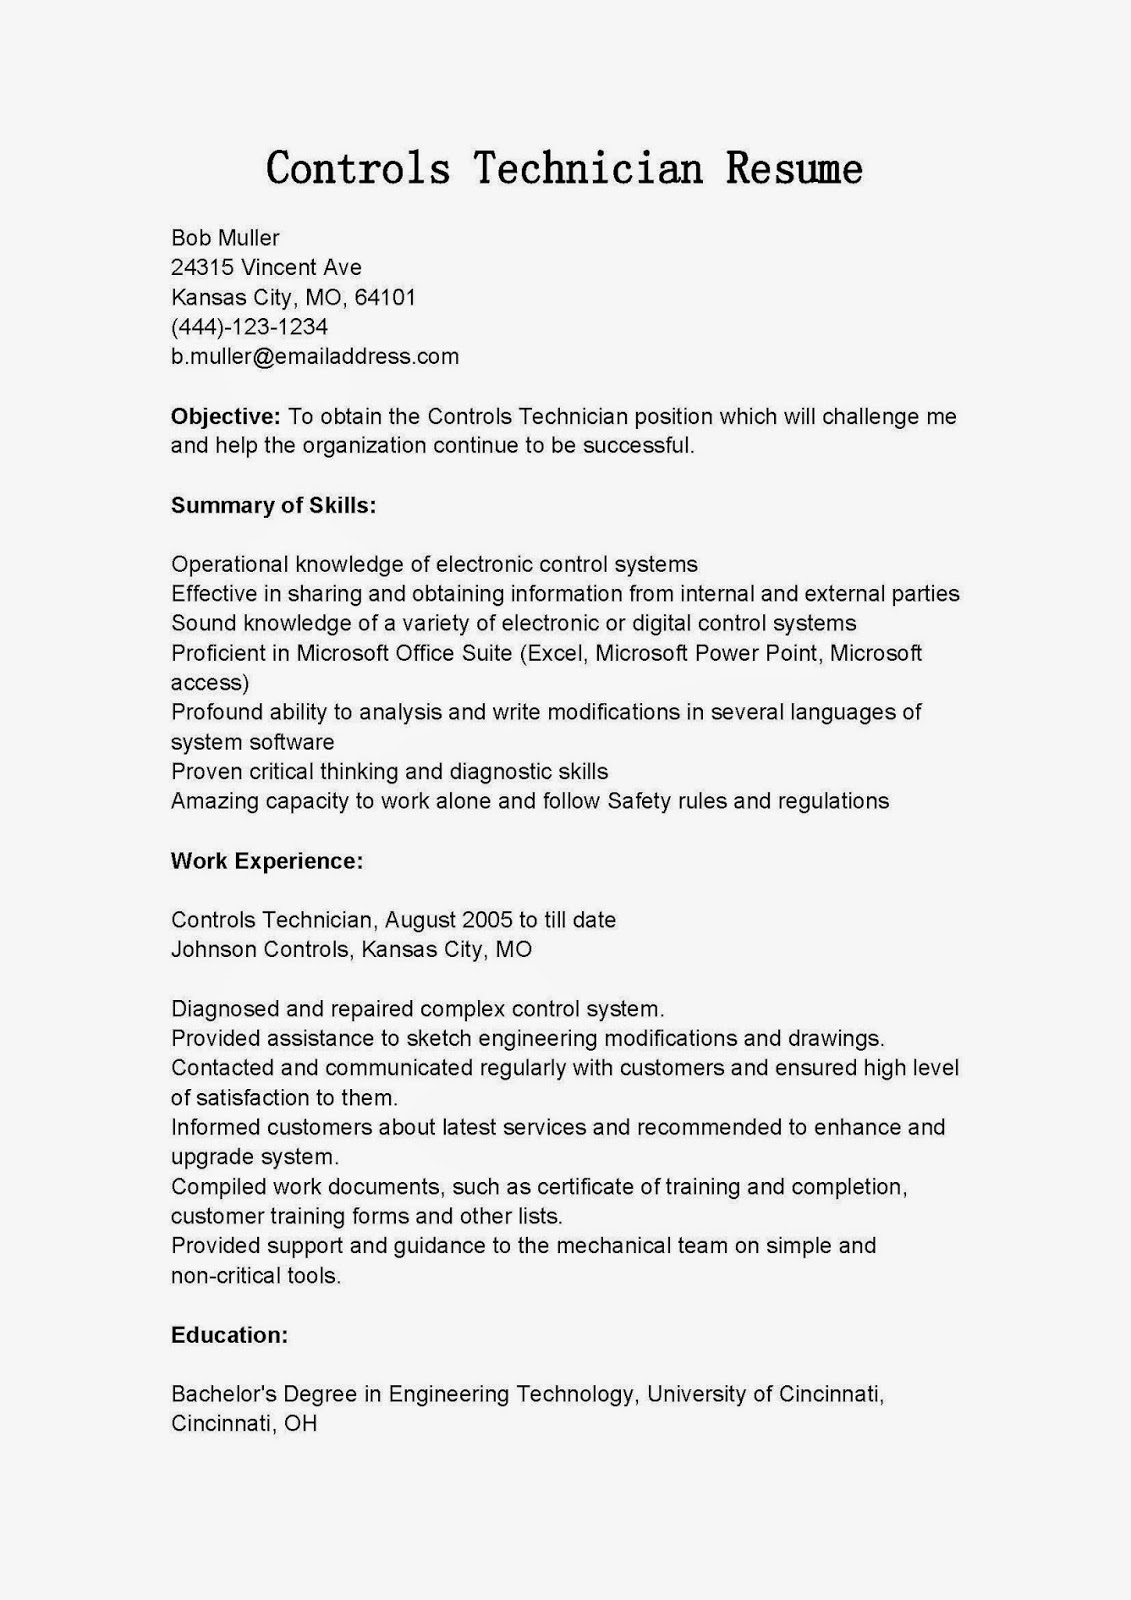 resume samples  controls technician resume sample